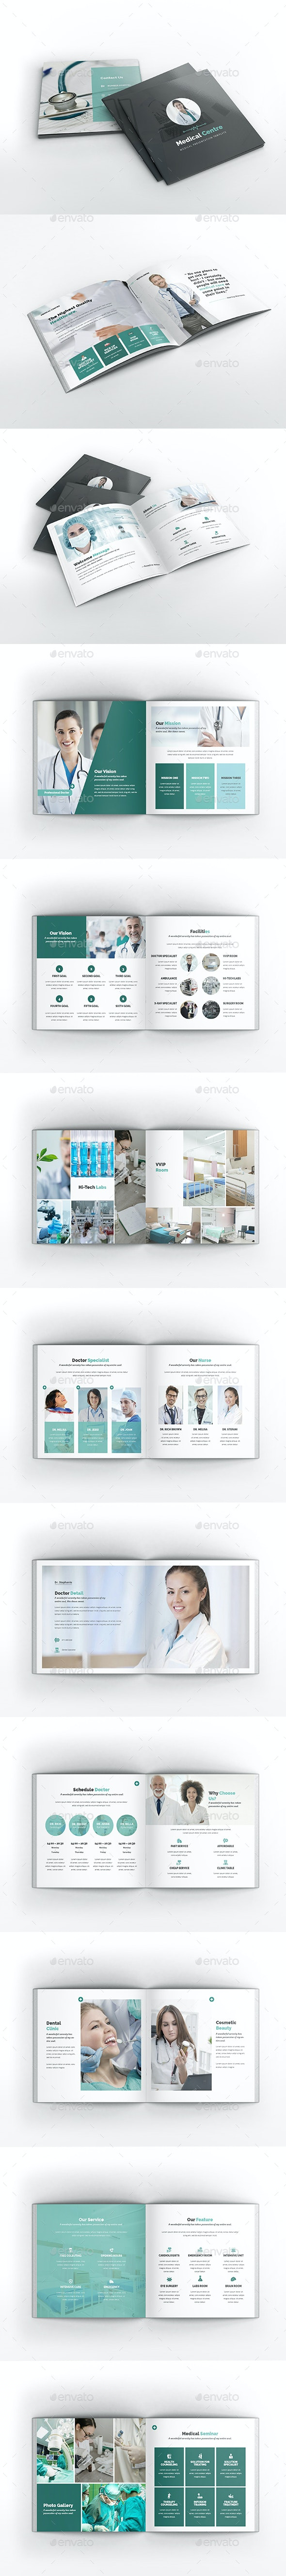 Medical Center Square Brochure Template - Brochures Print Templates